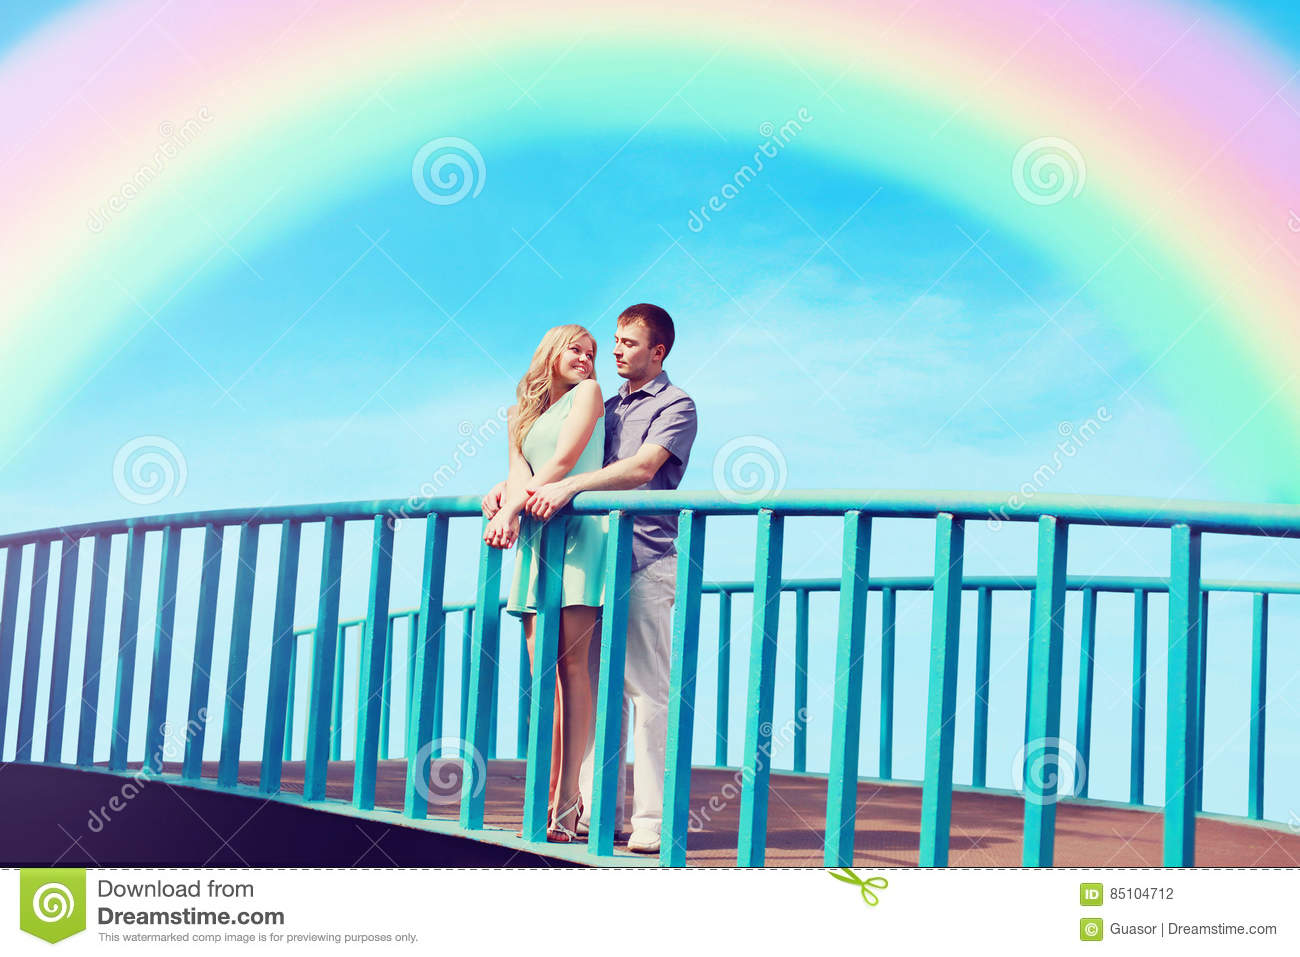 Happy pretty young couple in love on the bridge over blue sky and colorful rainbow. Valentine`s day and relationships